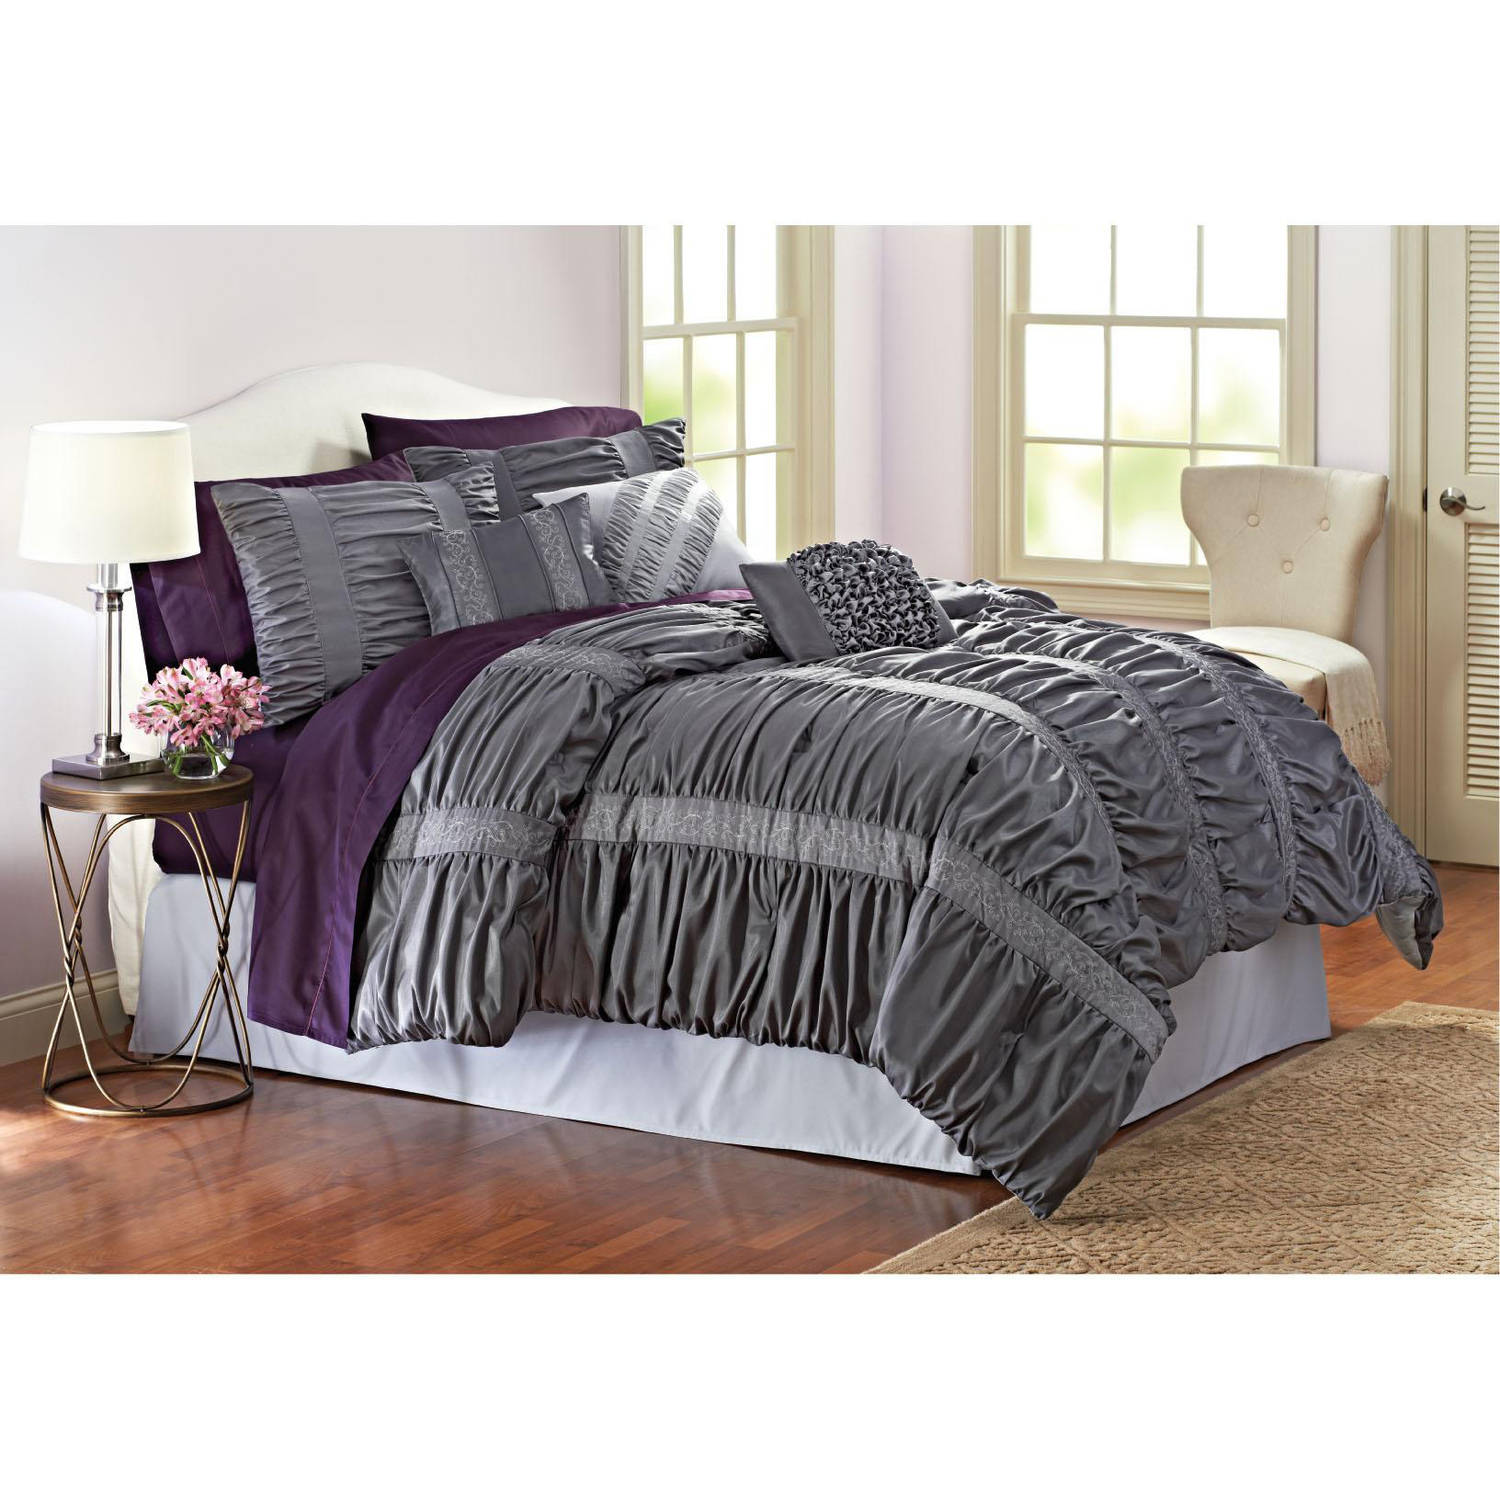 Better Homes and Gardens 7 Piece Comforter Set, Grey Quinn